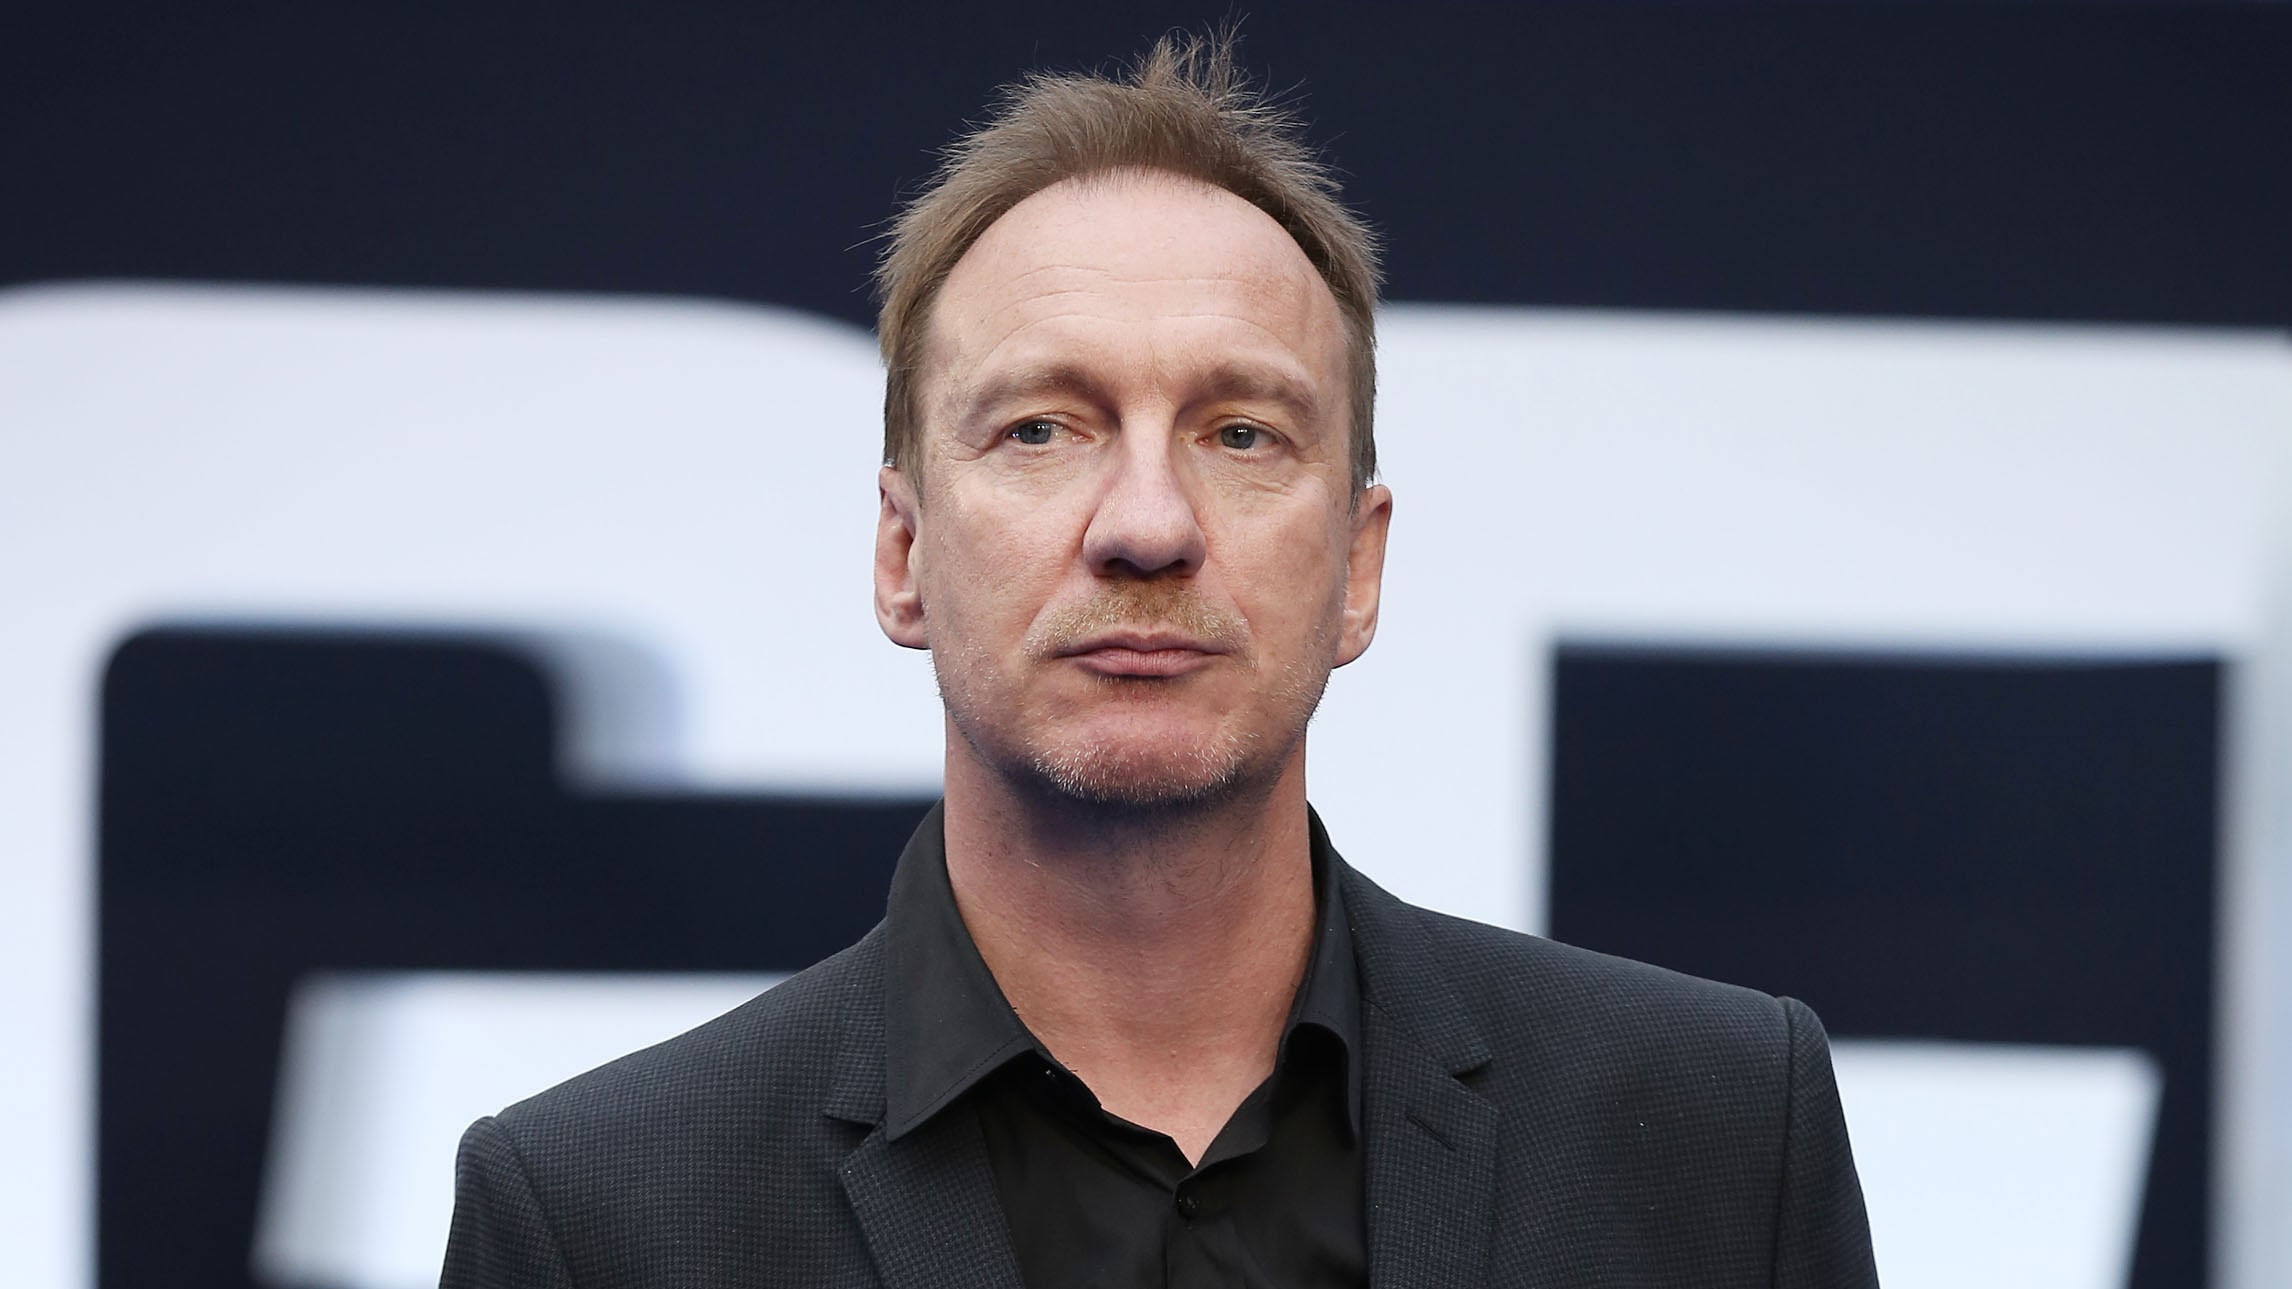 David Thewlis Cast As Lead In Amazon's Sci-Fi Thriller